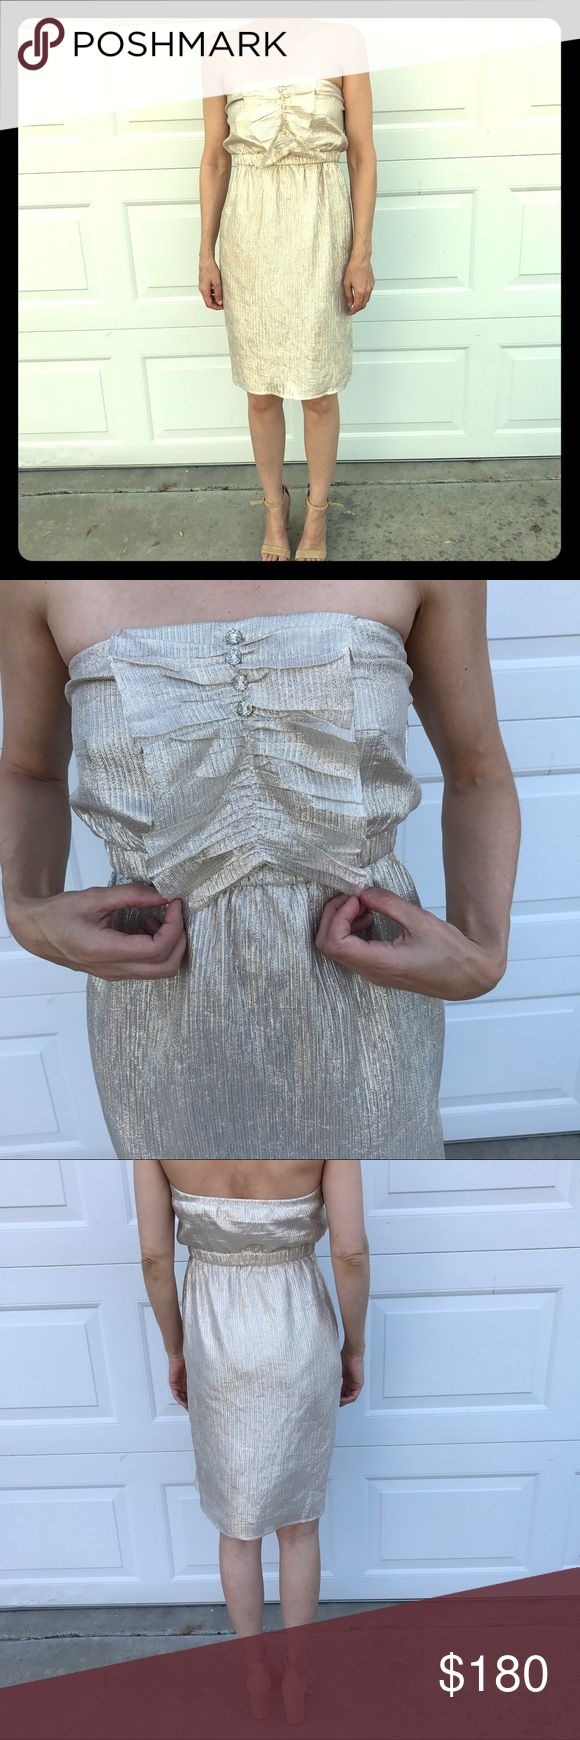 Twelfth  Street Cynthia Vincent Ruffle Strapless Gold and small silver threads run up and down this dress to make it a subdued metallic color. NWT perfect condition. Elastic at waist. Top has elastic in back but not in front. Because my top is so small it would fall on me if I didn't tape. I think it's more of a 2 than a 4 but depending on your chest measurement may need to get top in a bit gorgeous dress to special occasion or going out!!! Definitely gold silver threads are not as prominent…